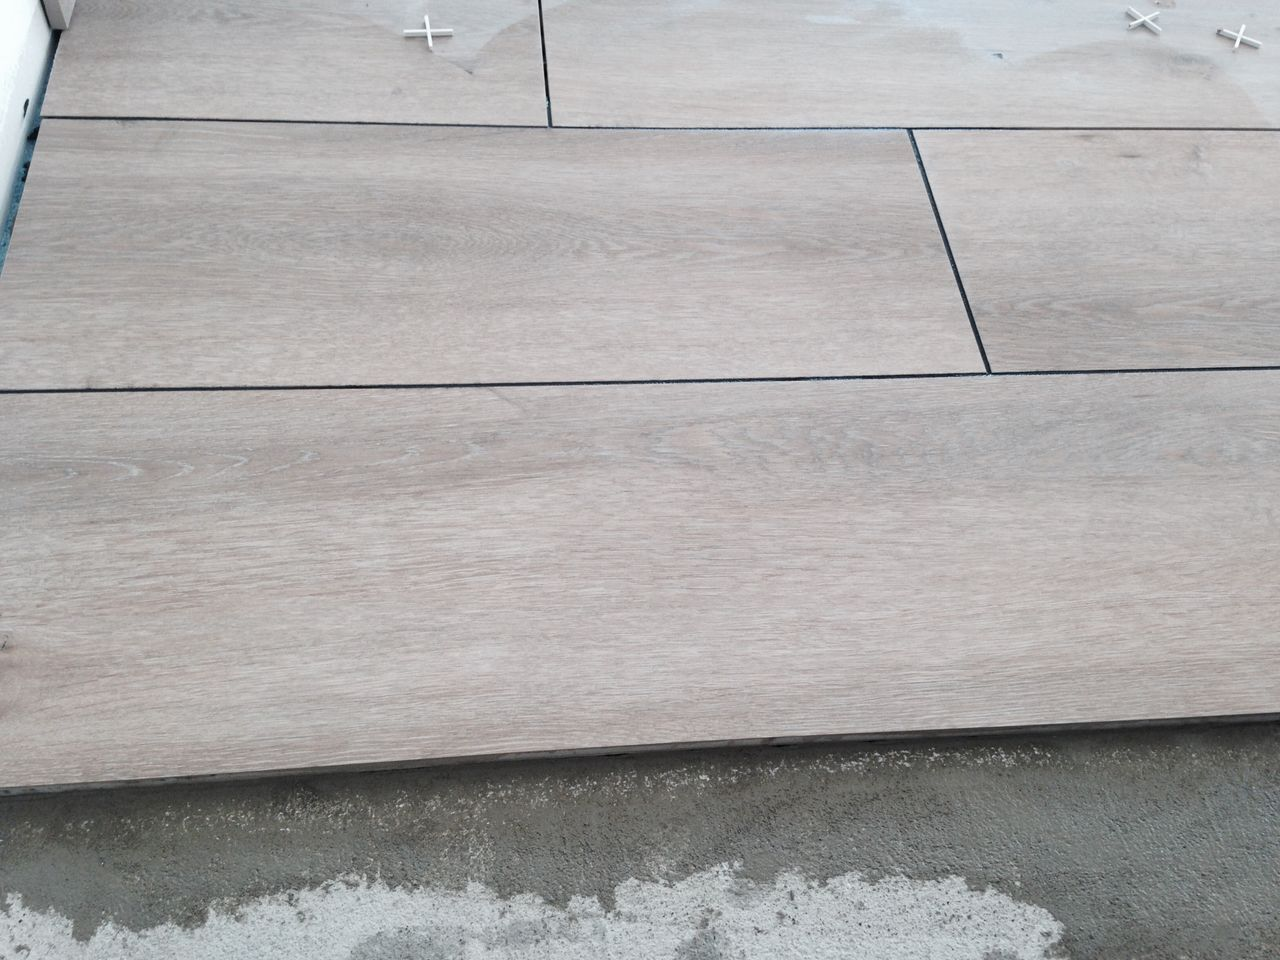 Quelle couleur de joints pour carrelage imitation parquet for Carrelage imitation parquet noir